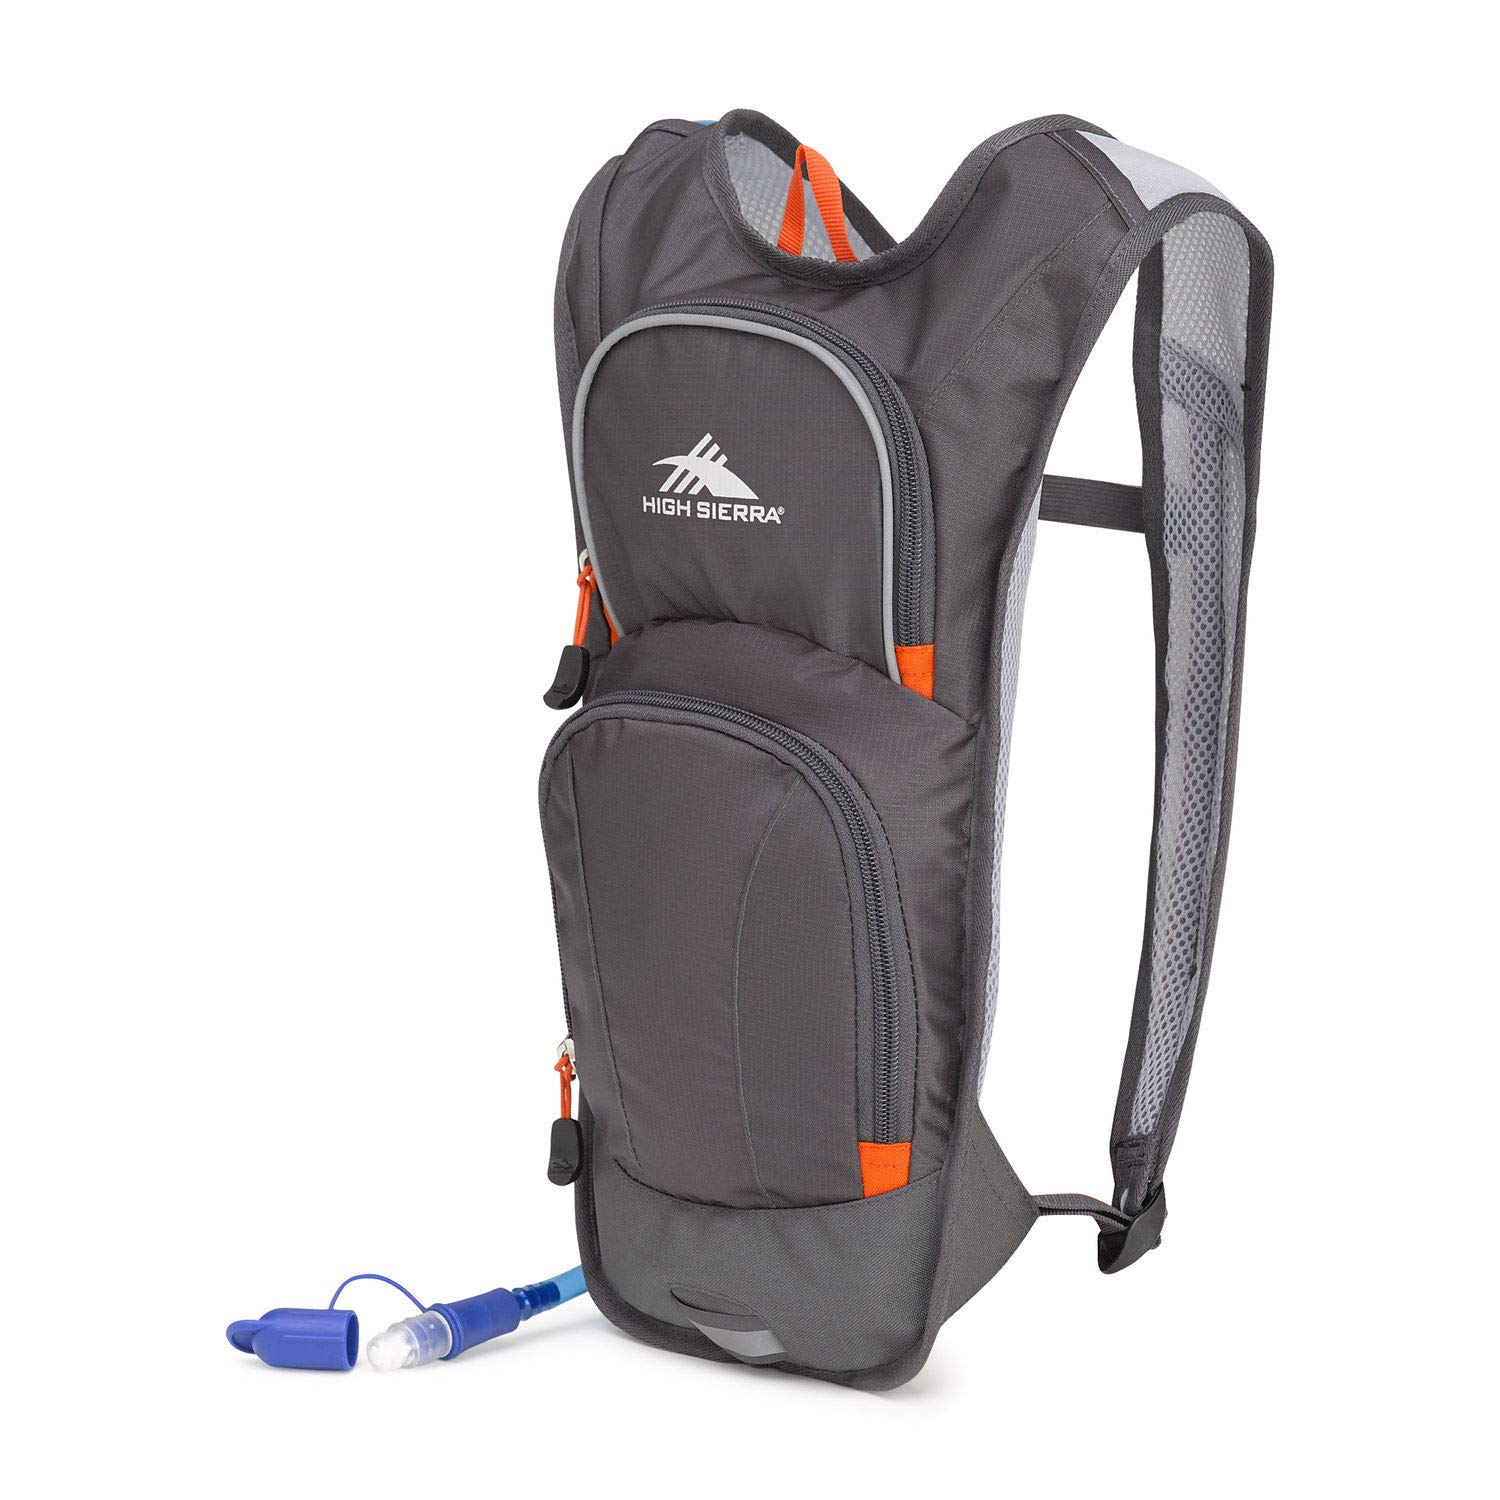 High Sierra HydraHike 4L Hydration Pack with 2L Reservoir Included